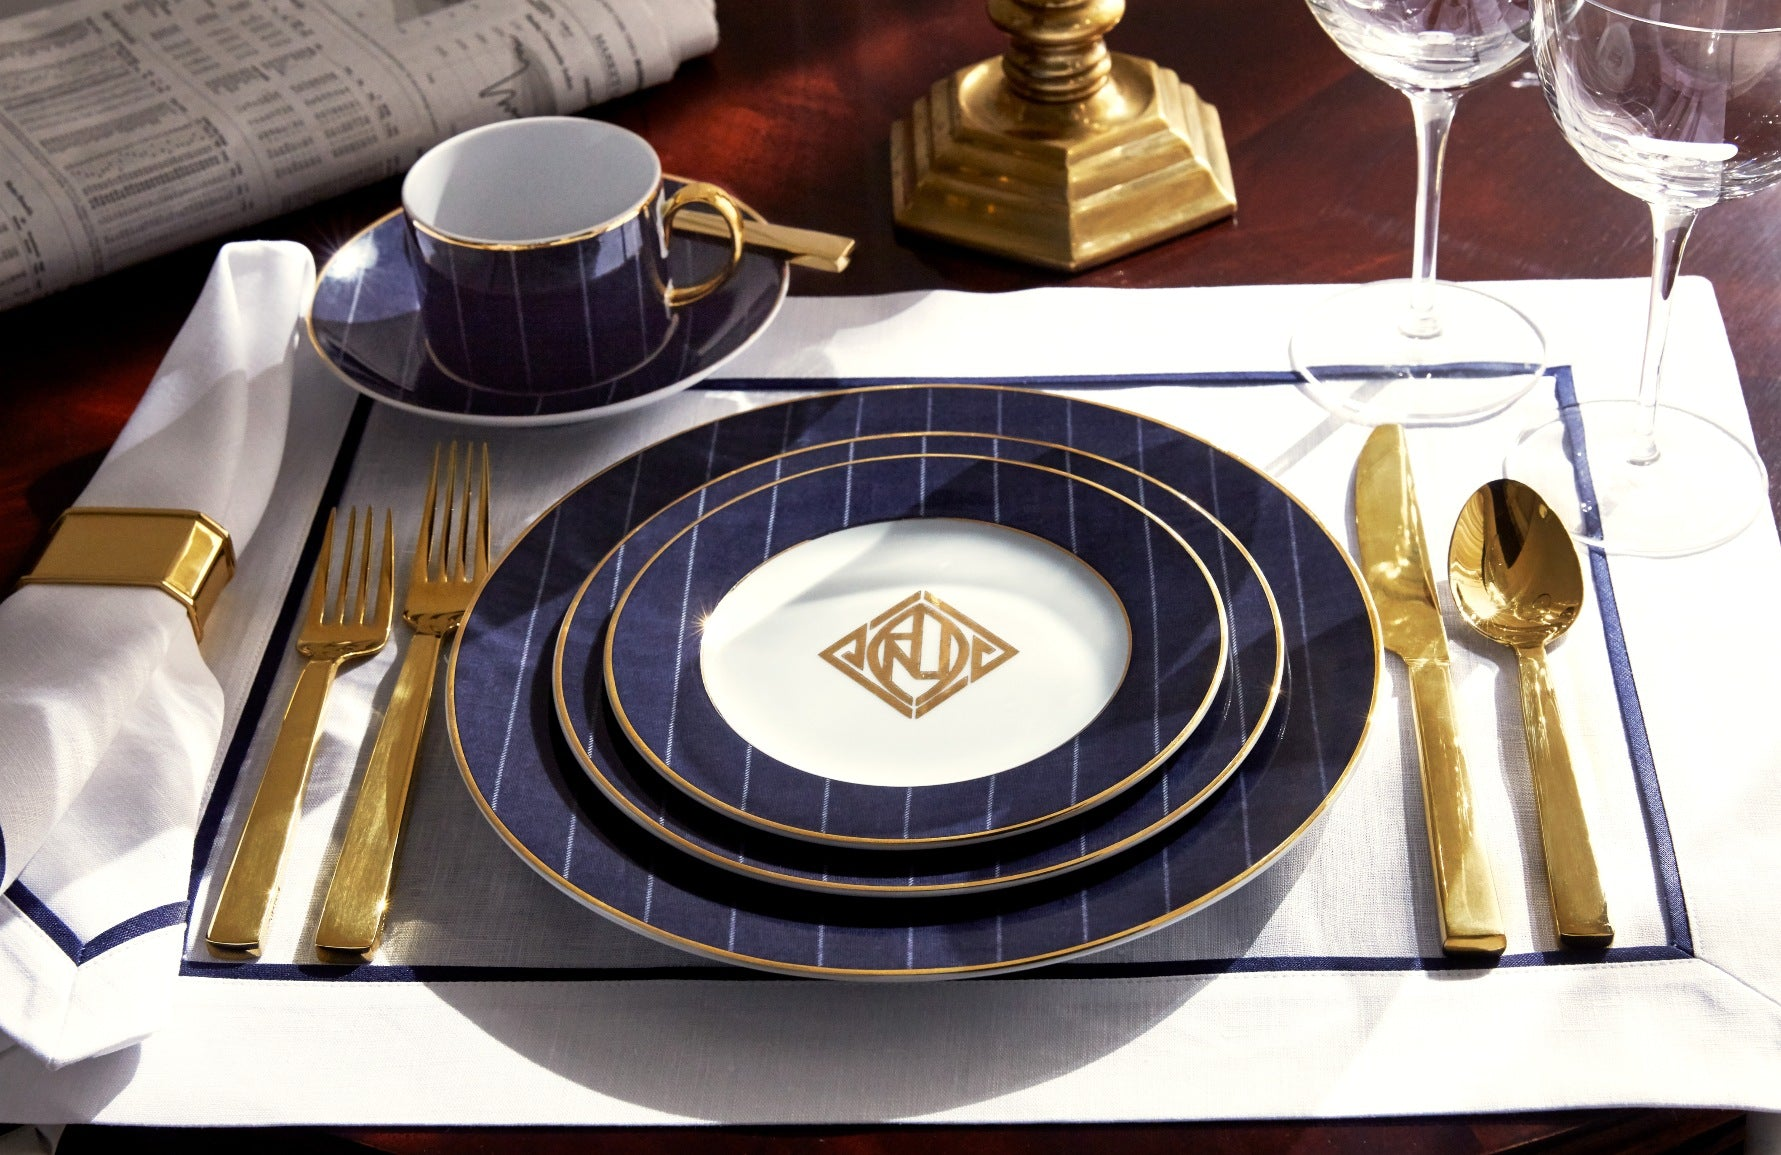 How To Set A Table - A Guide to Dining Table Settings - Ralph Lauren - LuxDeco.com Style Guide